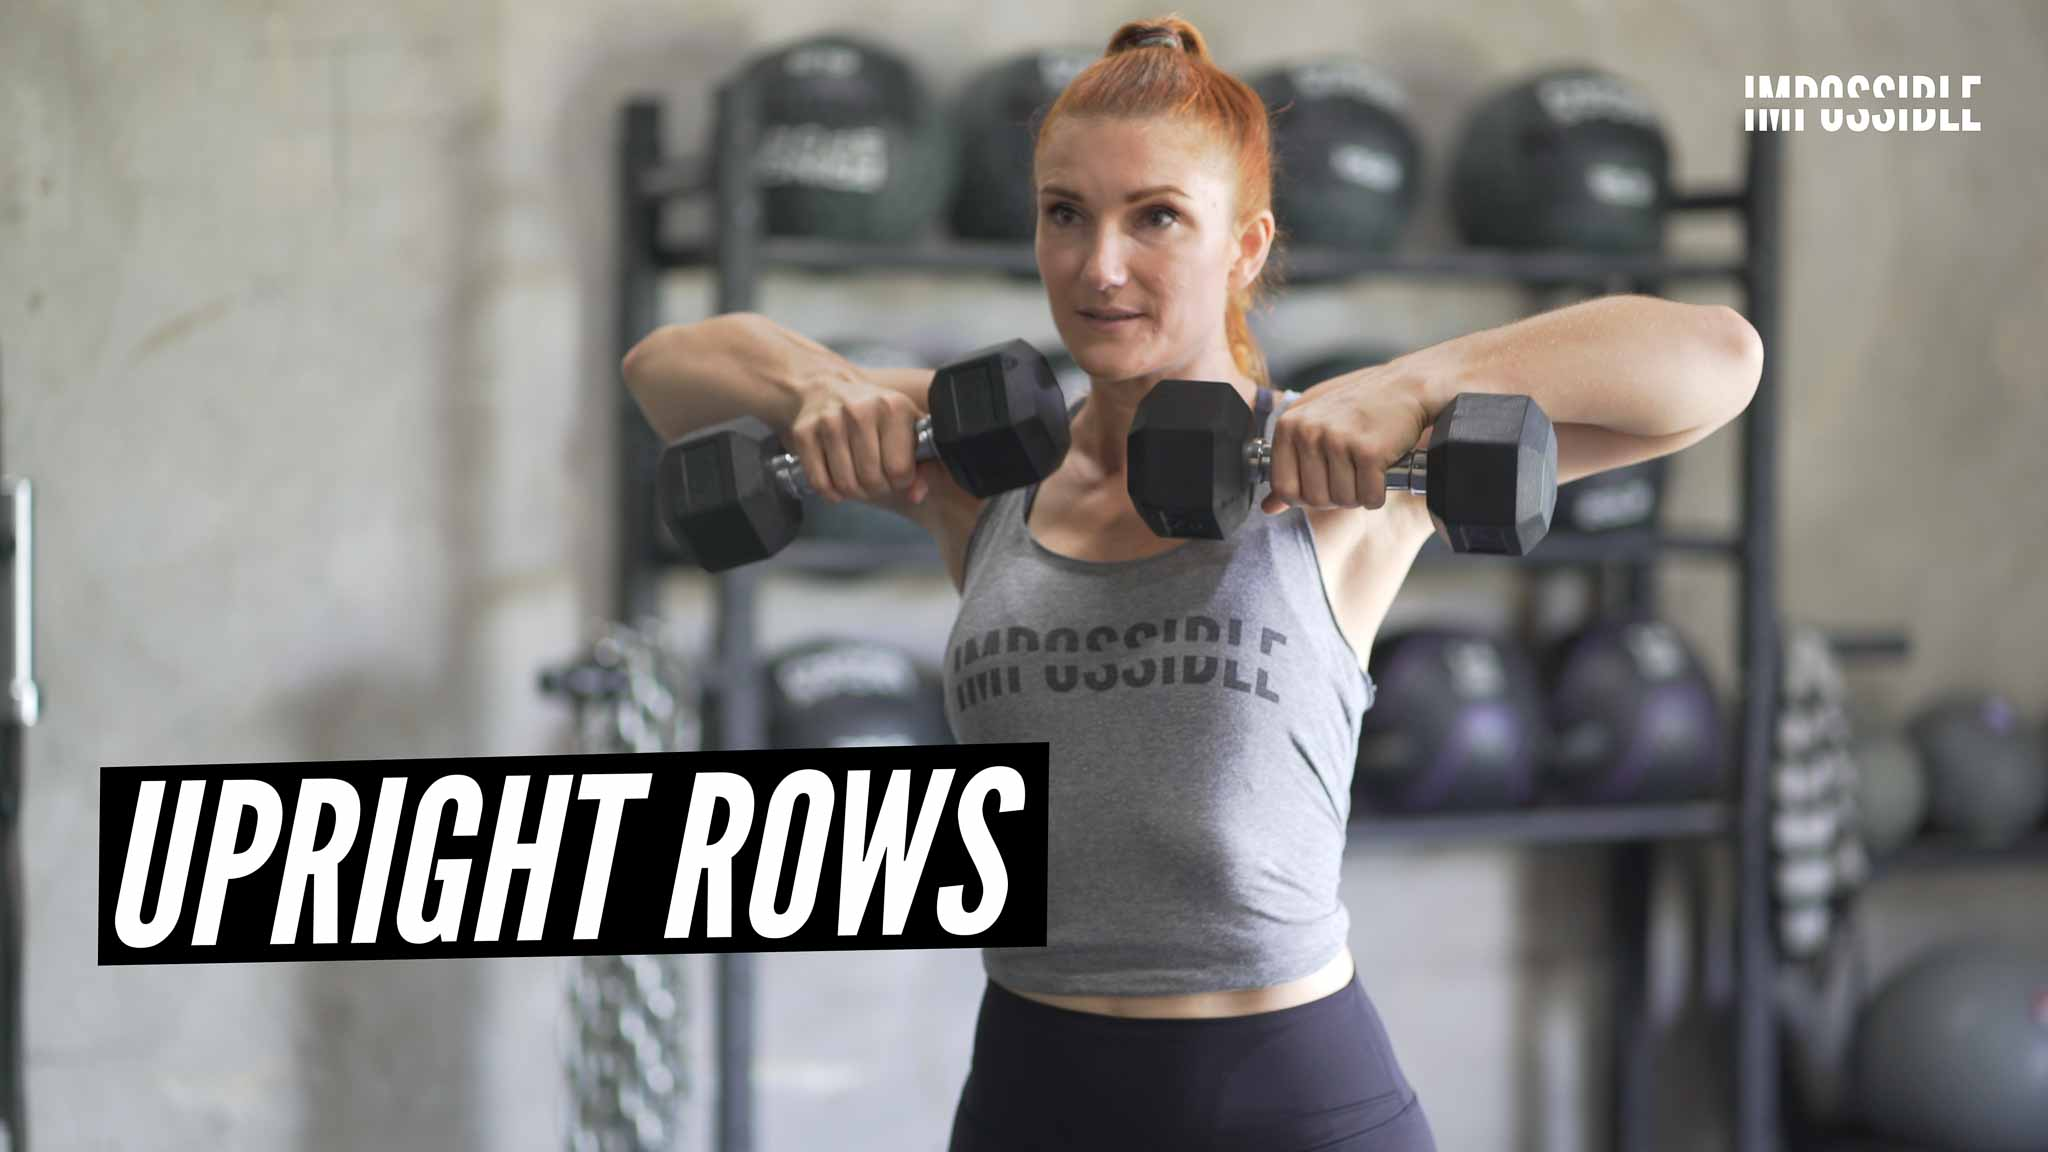 upright-rows-demonstration